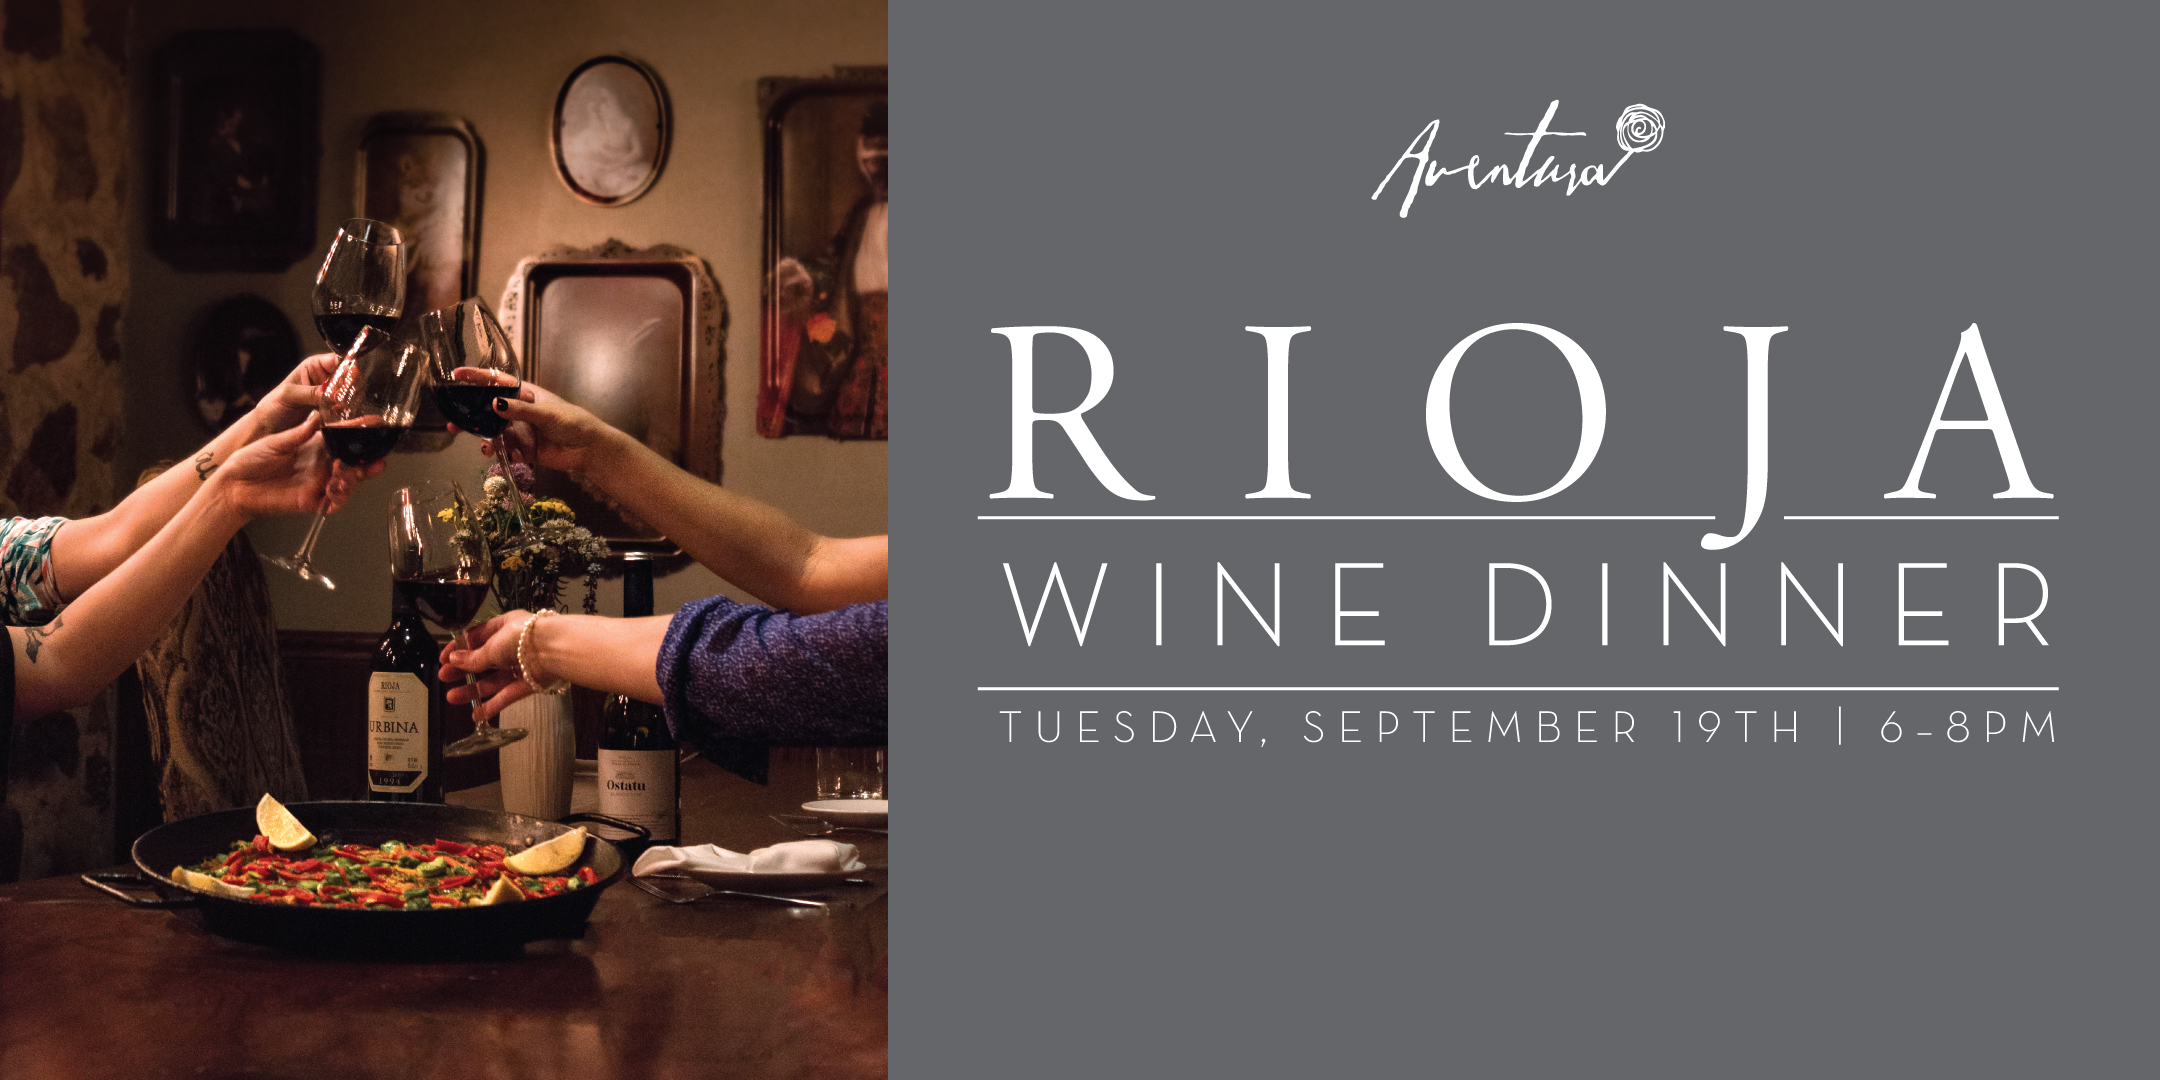 rioja_wine_dinner_aventura_eventbrite_082817TH.png